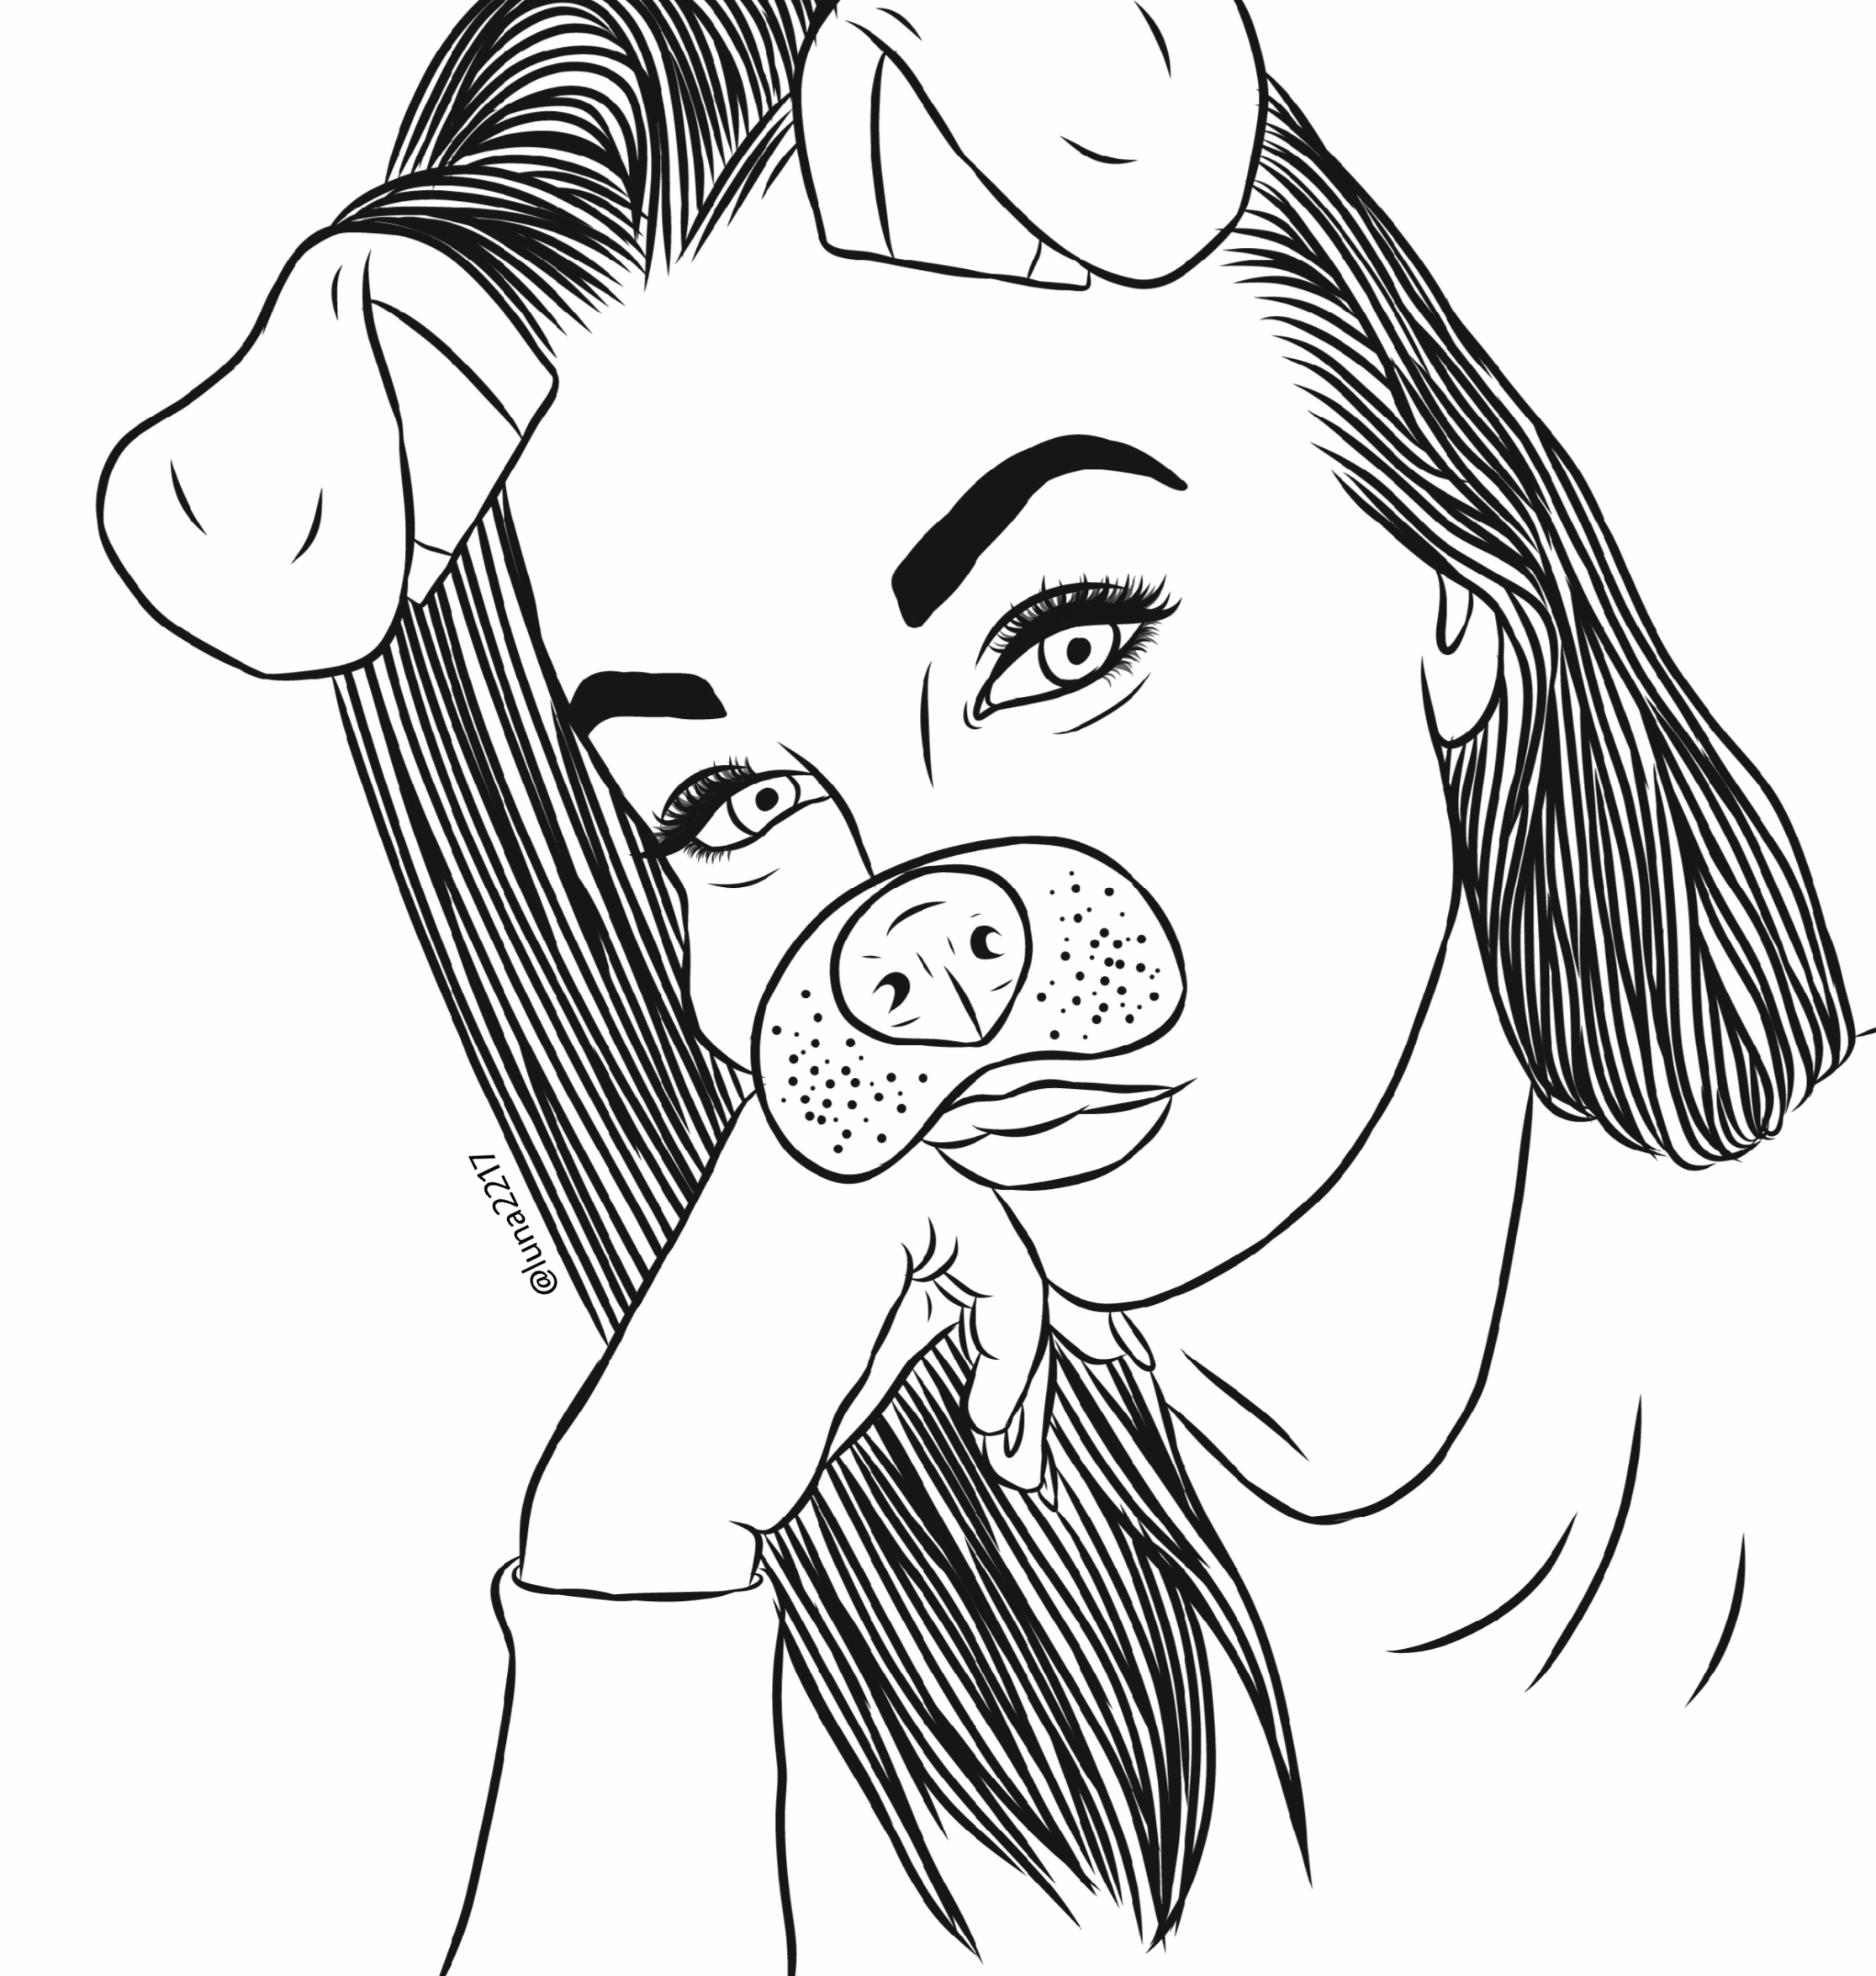 Https Cdn141 Picsart Com 280169698002201 Png In 2020 Outline Drawings Girly Drawings Snapchat Drawing